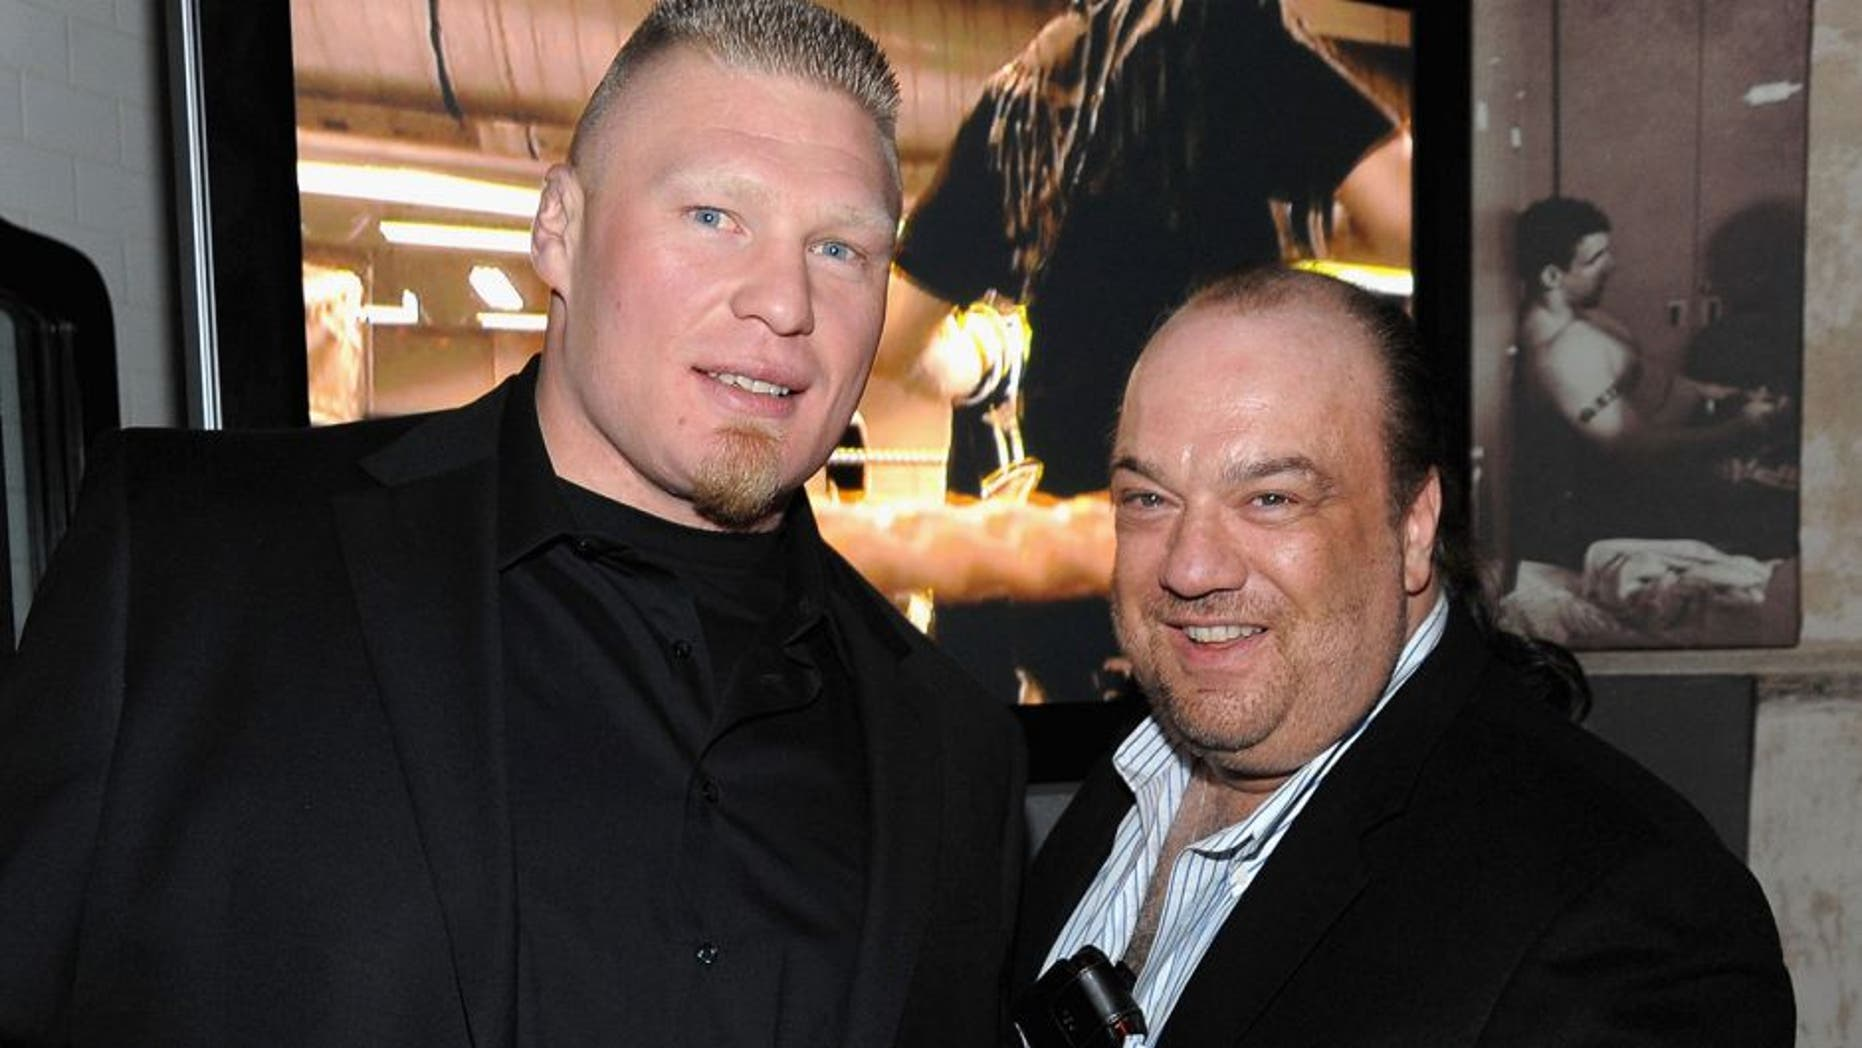 NEW YORK - MARCH 26: Brock Lesner UFC Heavyweight Champion and Paul Heyman attend the UFC 111 party at 632 Hudson on March 26, 2010 in New York City. (Photo by Jamie McCarthy/WireImage for City Publicity) *** Local Caption ***